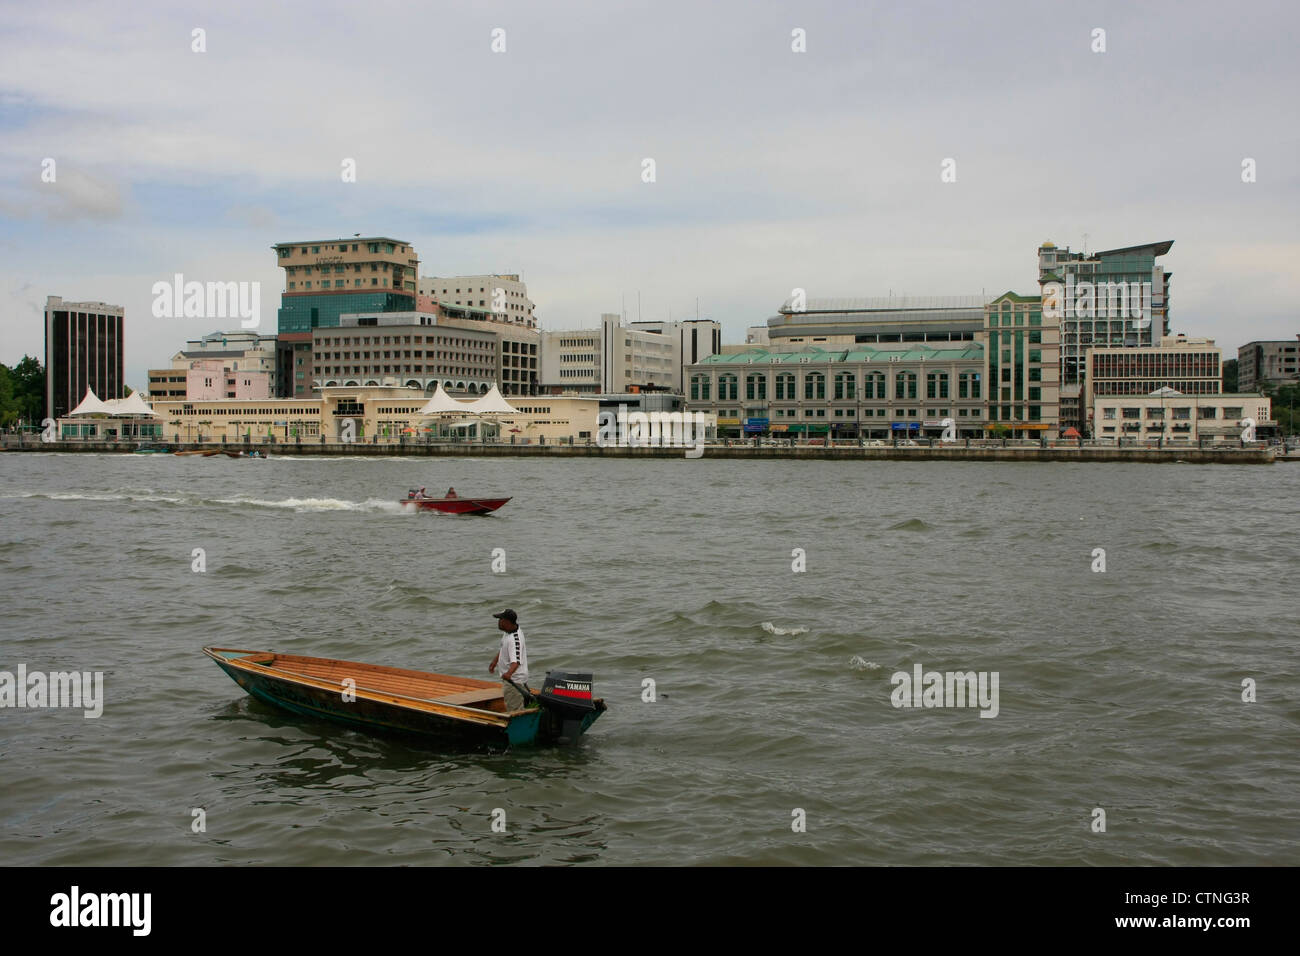 Capital skyline, Bandar Seri Begawan, Brunei, Southeast Asia - Stock Image